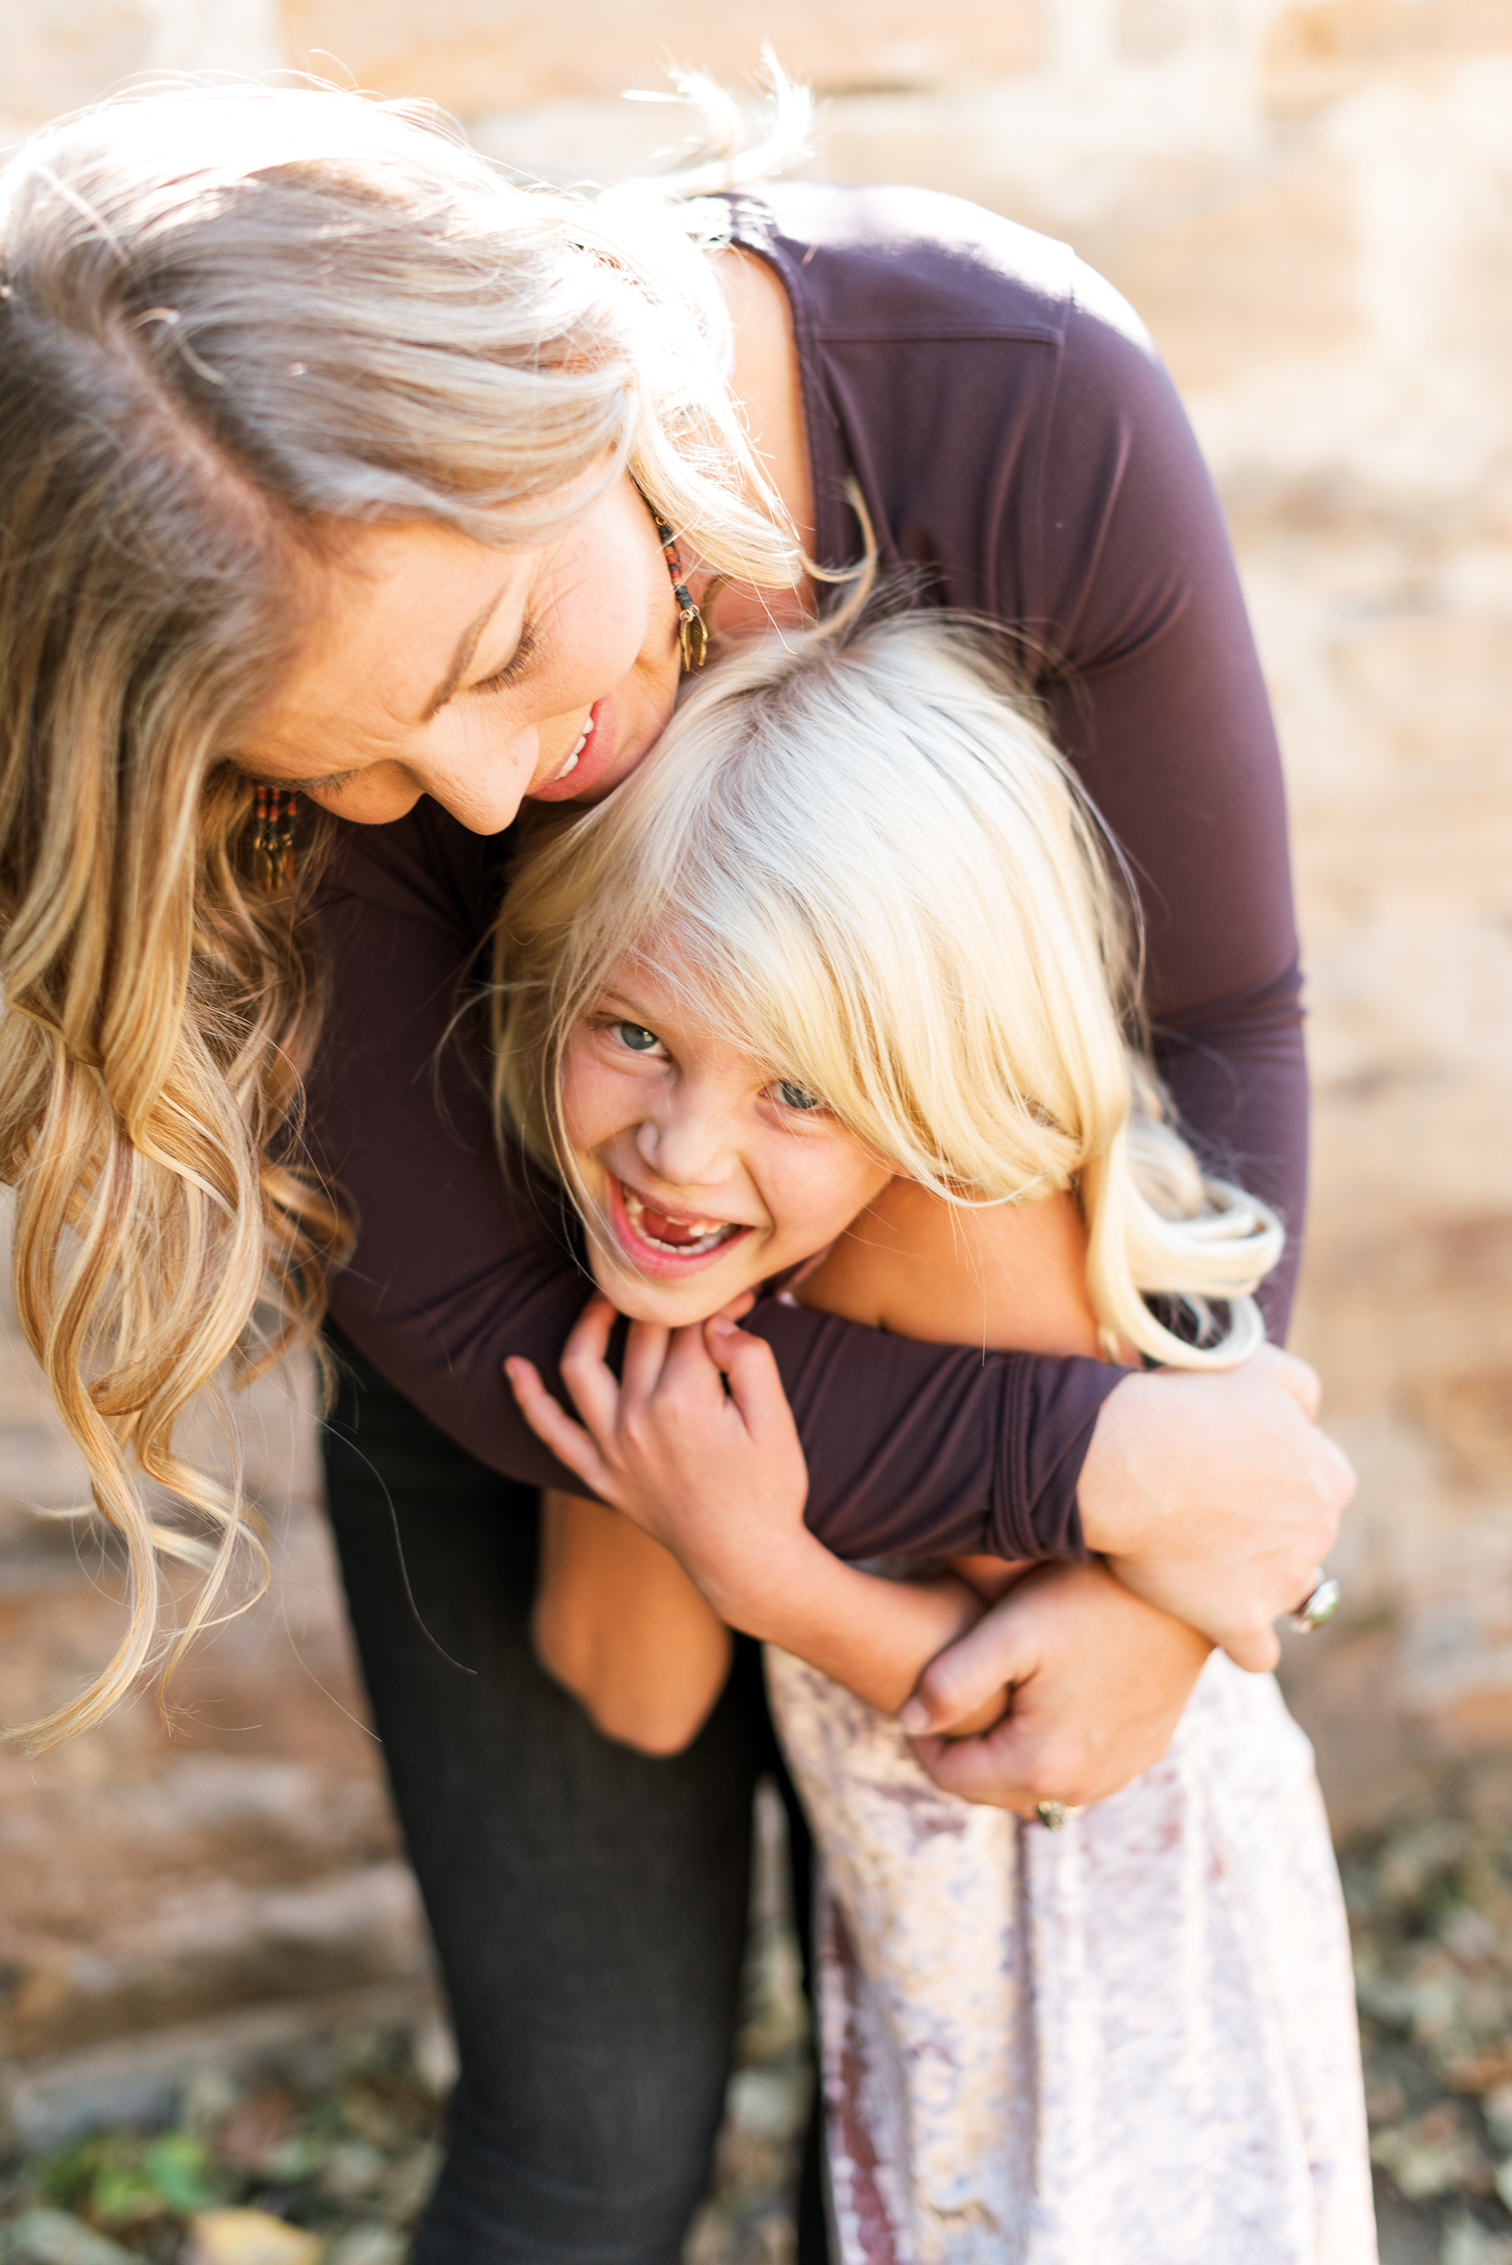 Fall Portraits, Colorado Family Portraits, Fort Collins Portrait Photographer, Fall Family Portraits, Mother with Children, Colorado Family Portraits, Mother Holding Daughter